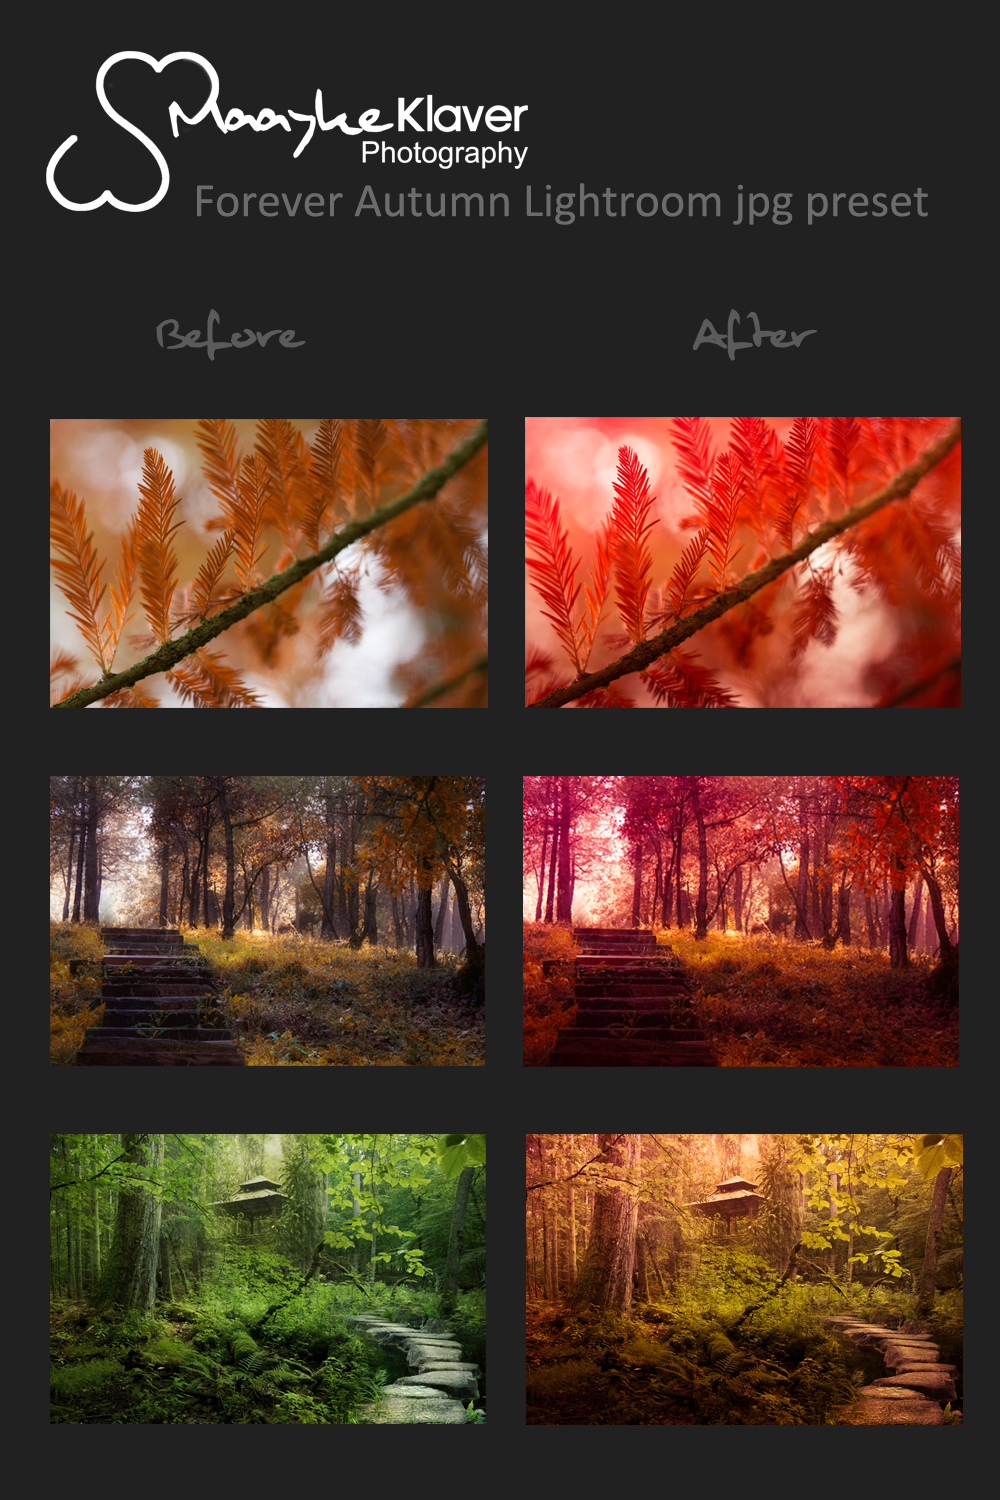 Forever Autumn Lightroom .jpg preset by MaaykeKlaver